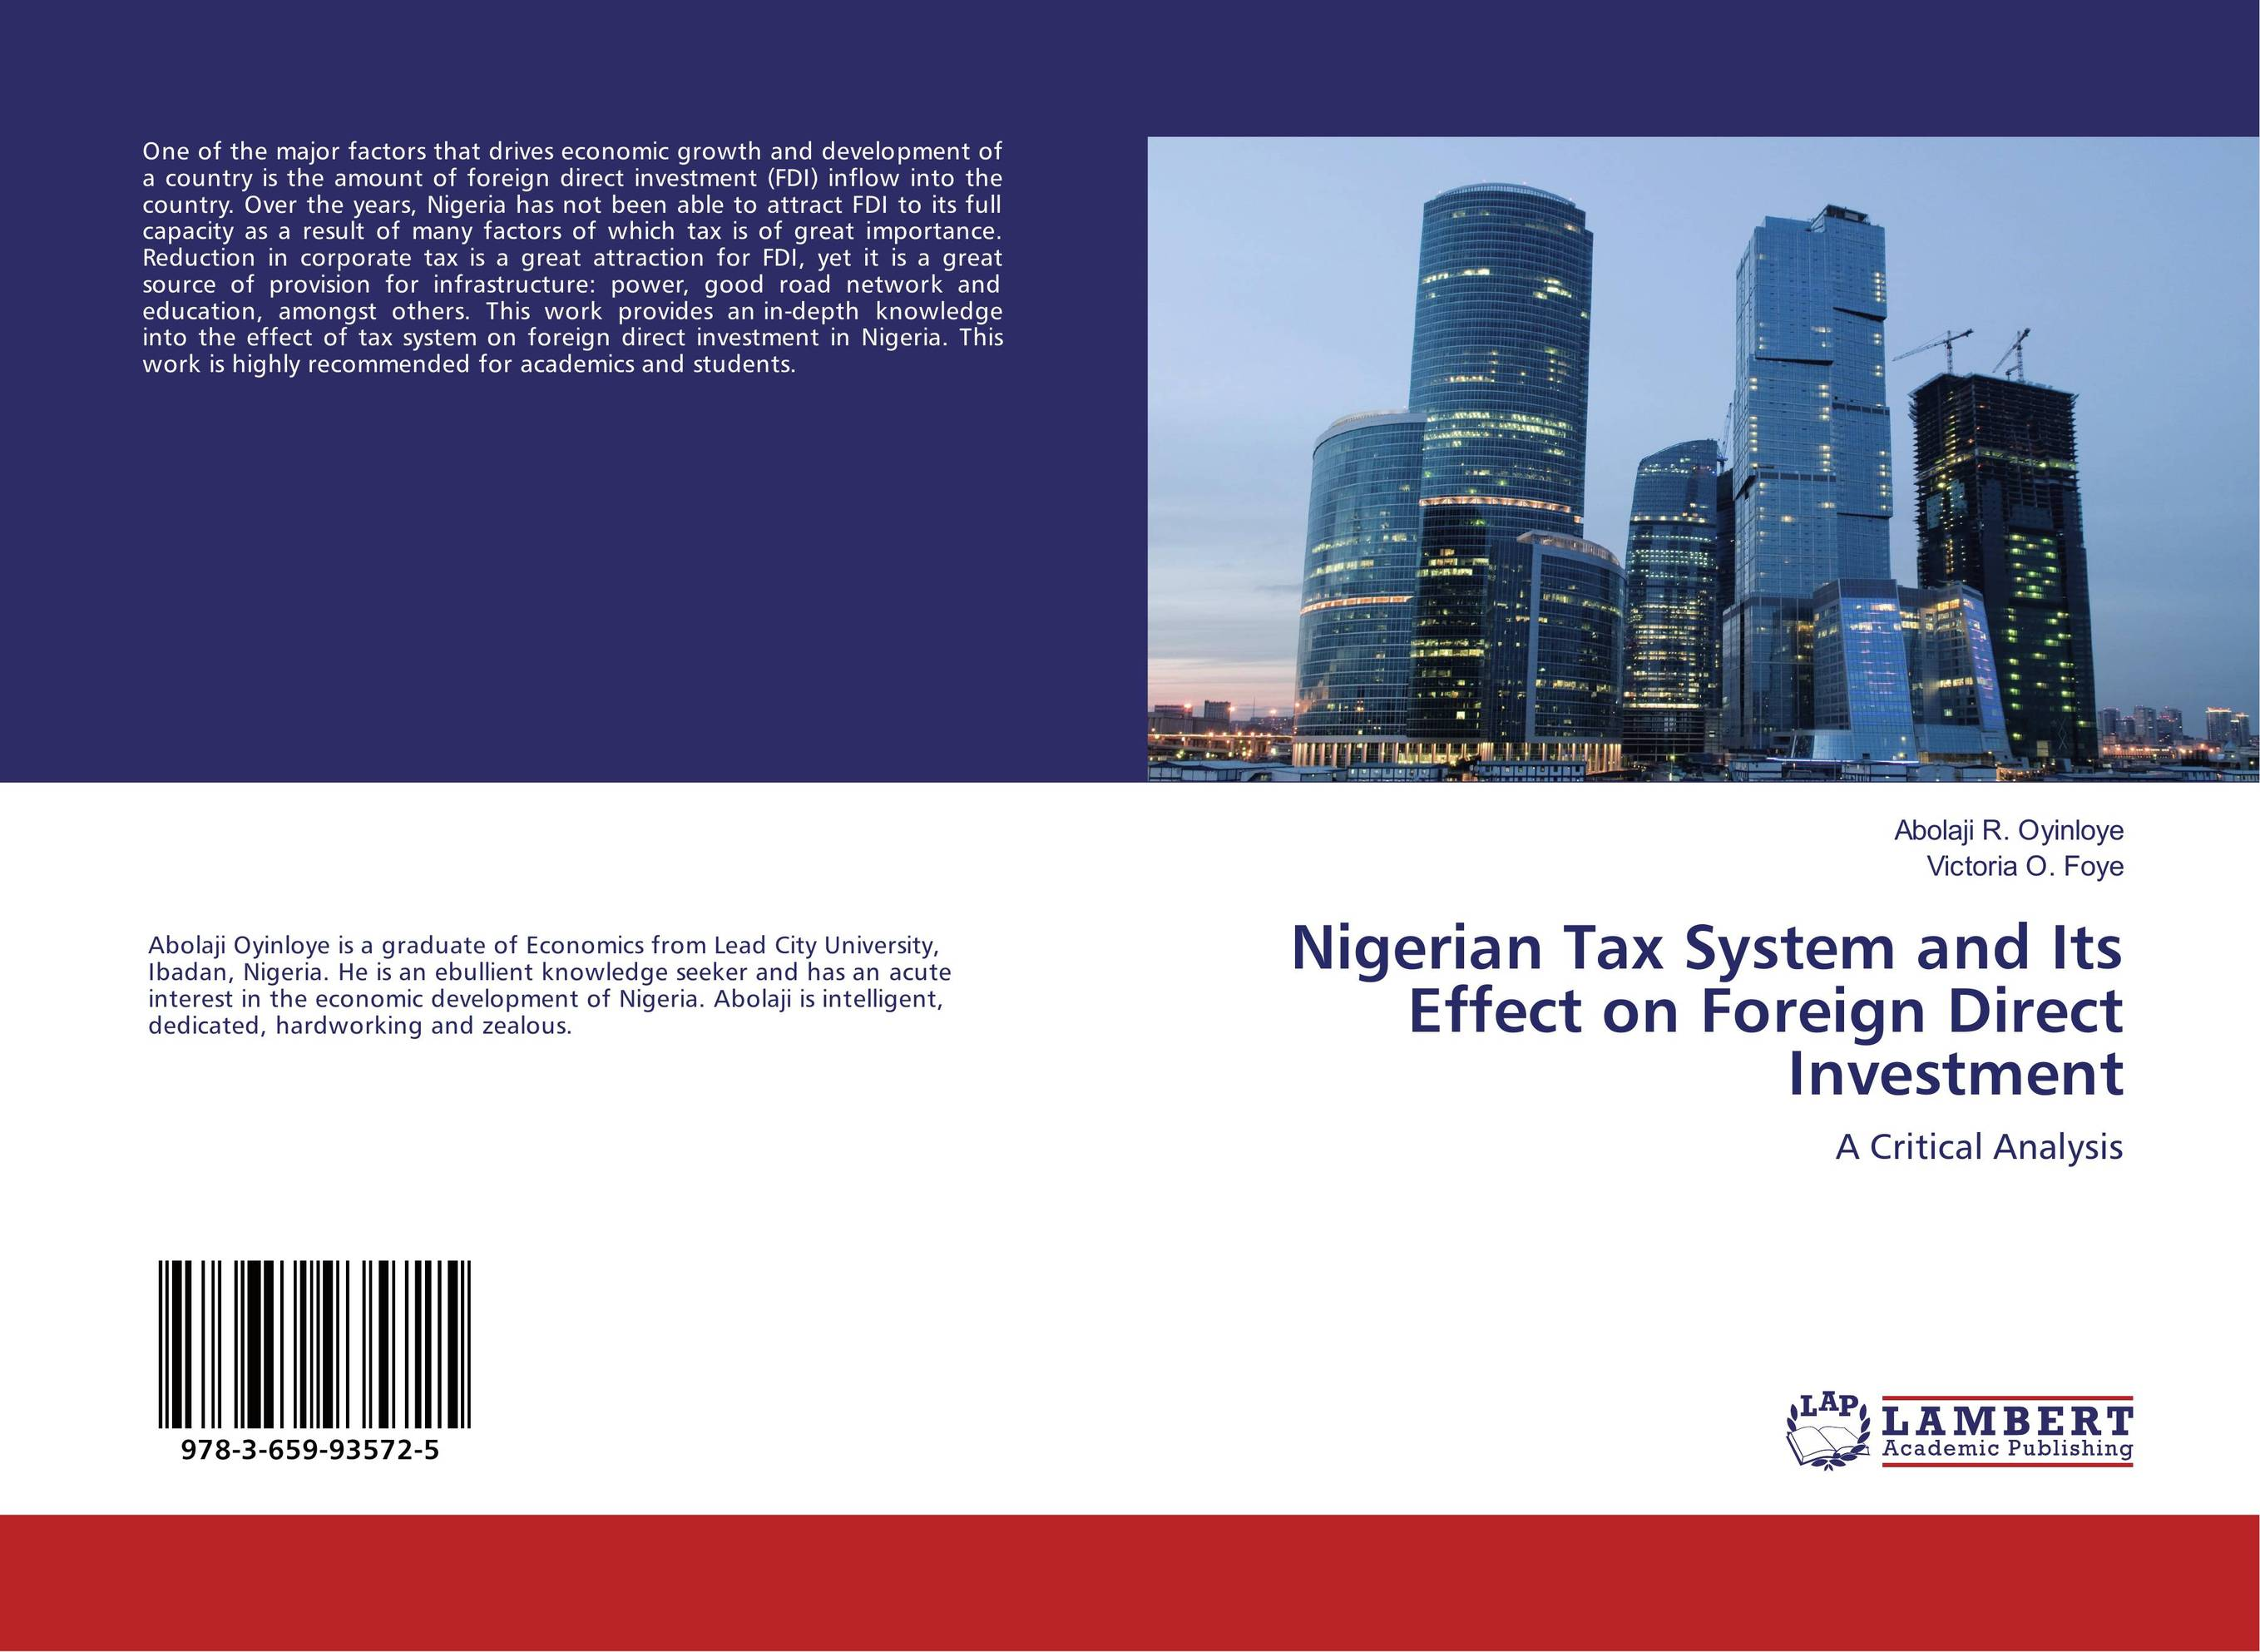 a critical analysis of fdi in In contemporary society, foreign direct investment has often been considered as a vital source for development and even for sustainable development, one of the major goals in the world we live today, found among the areas of preoccupation for researchers and policy makers.